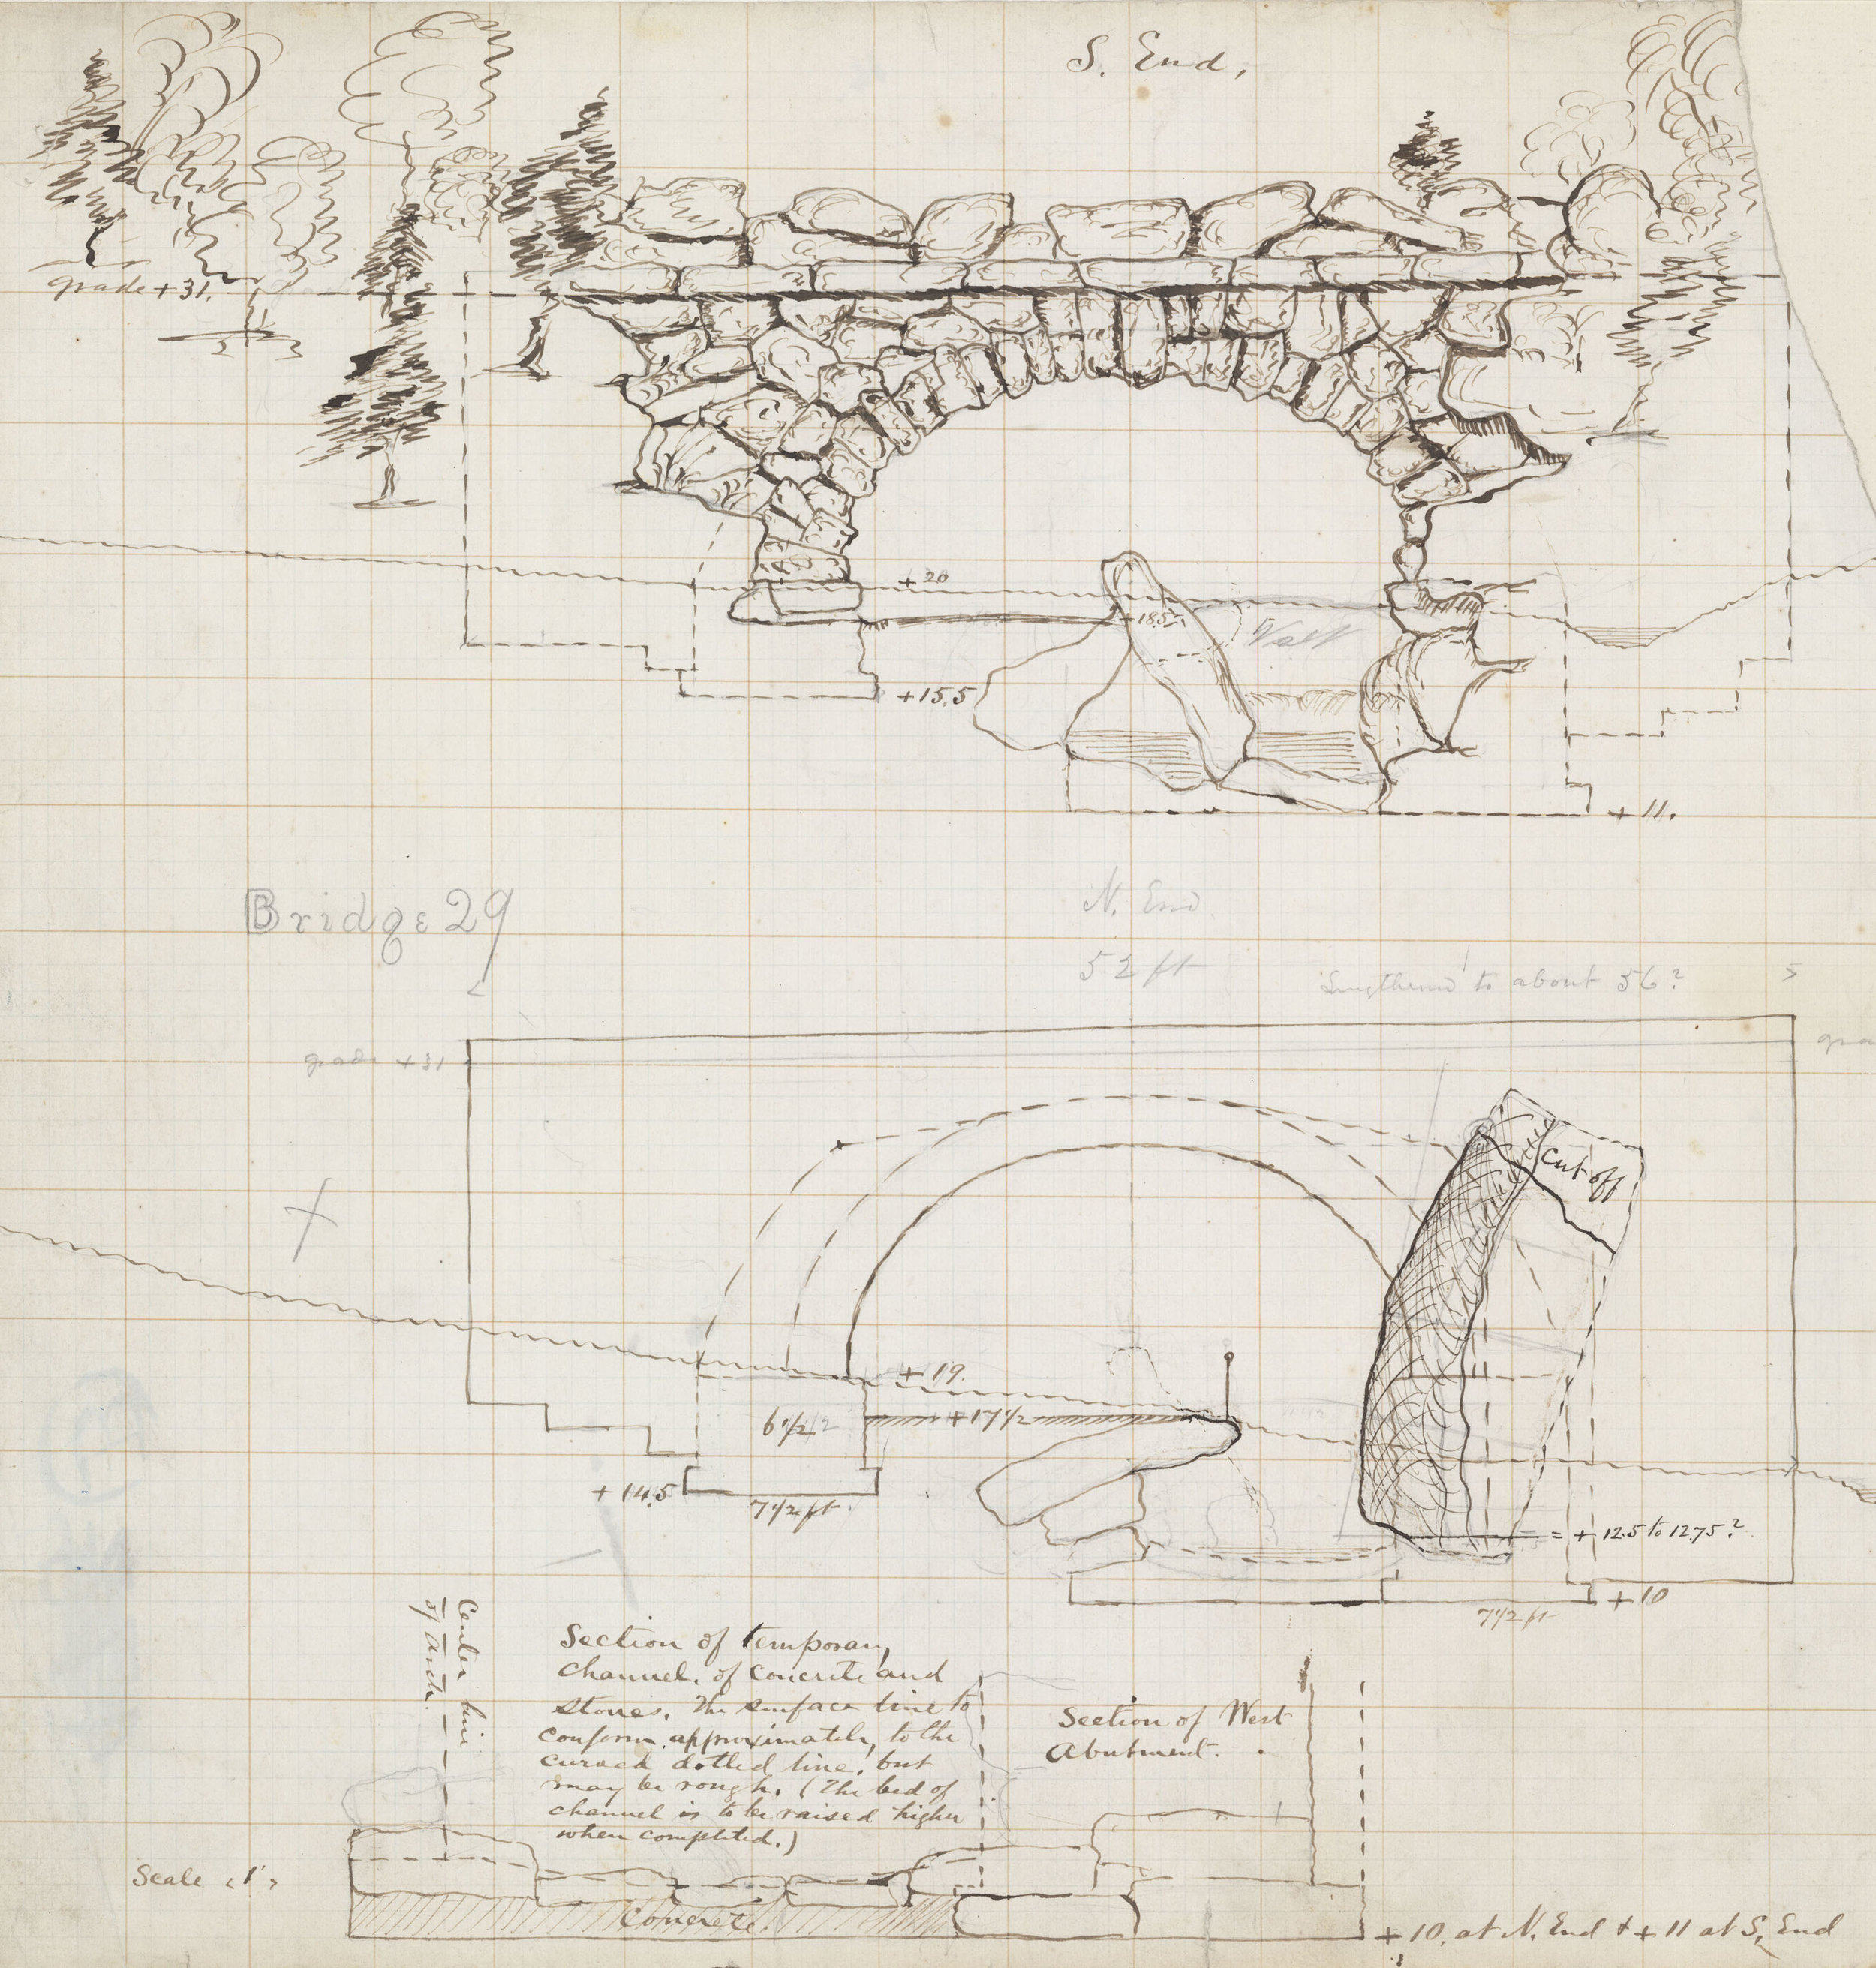 Huddlestone Arch, plan showing the southern elevation and a schematic sketch of the north side, 1864.  Black ink with pencil on graph paper, 13 ¼ x 16 ½ inches